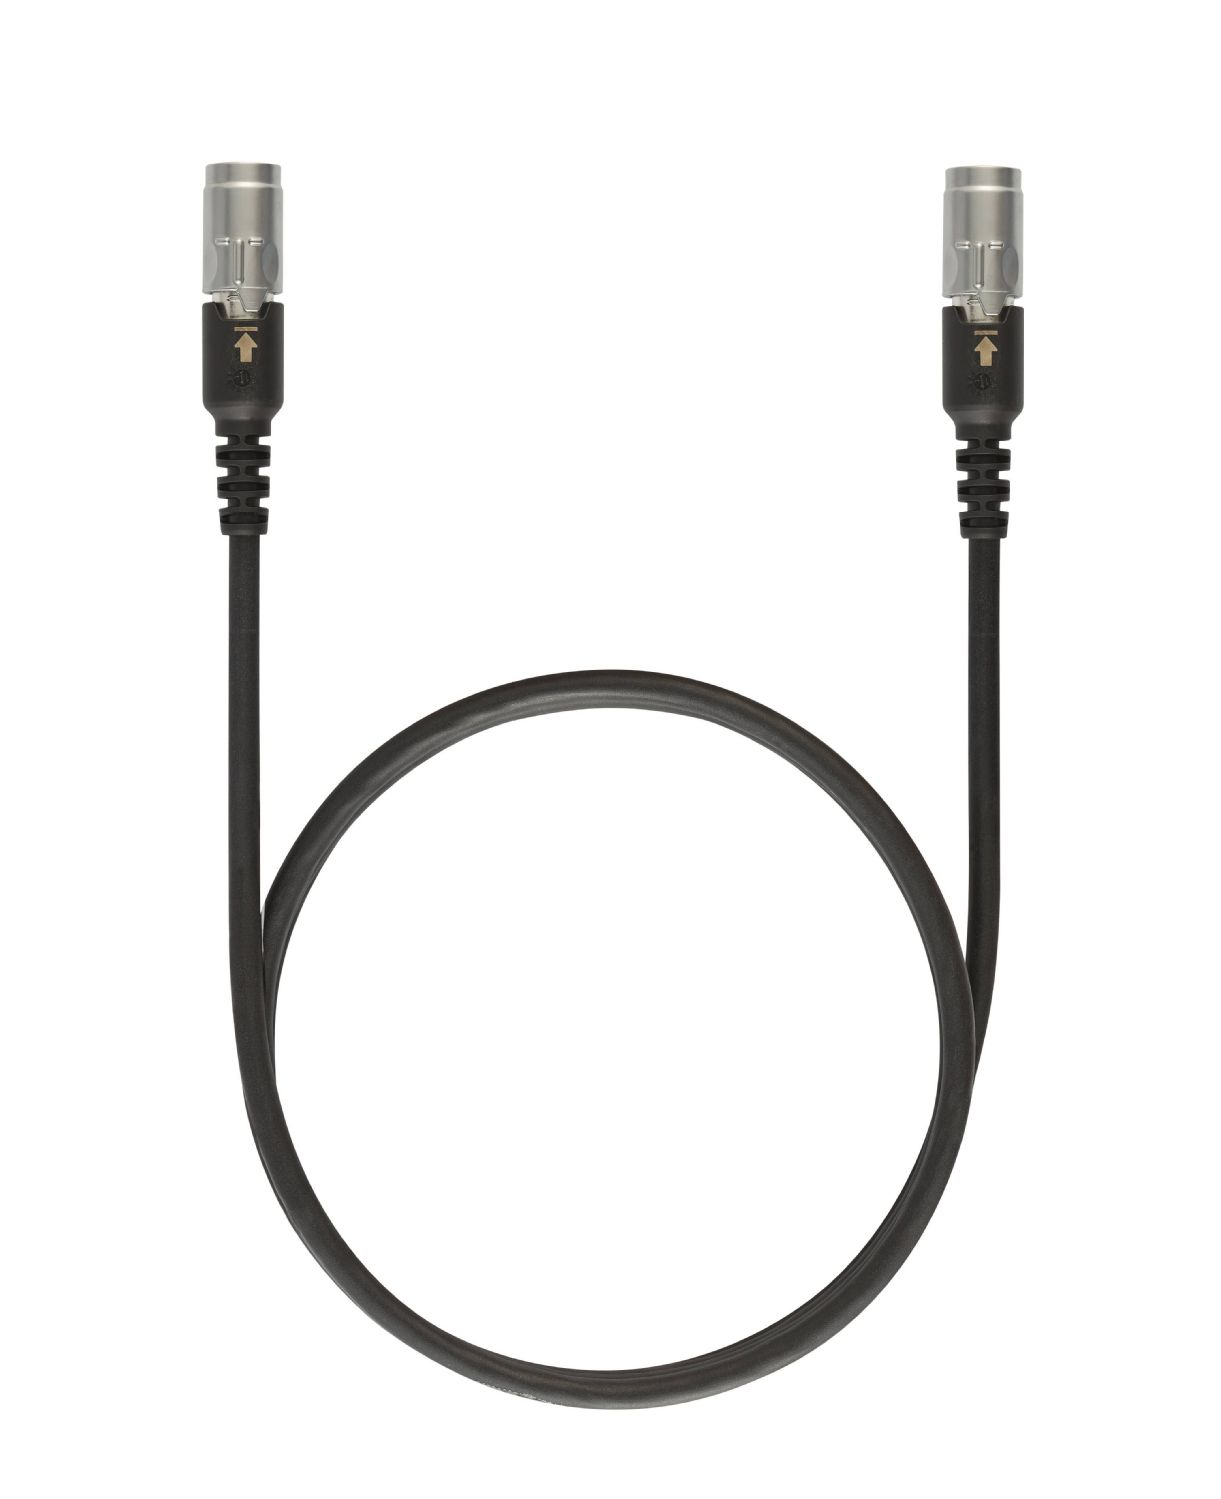 Conection cable